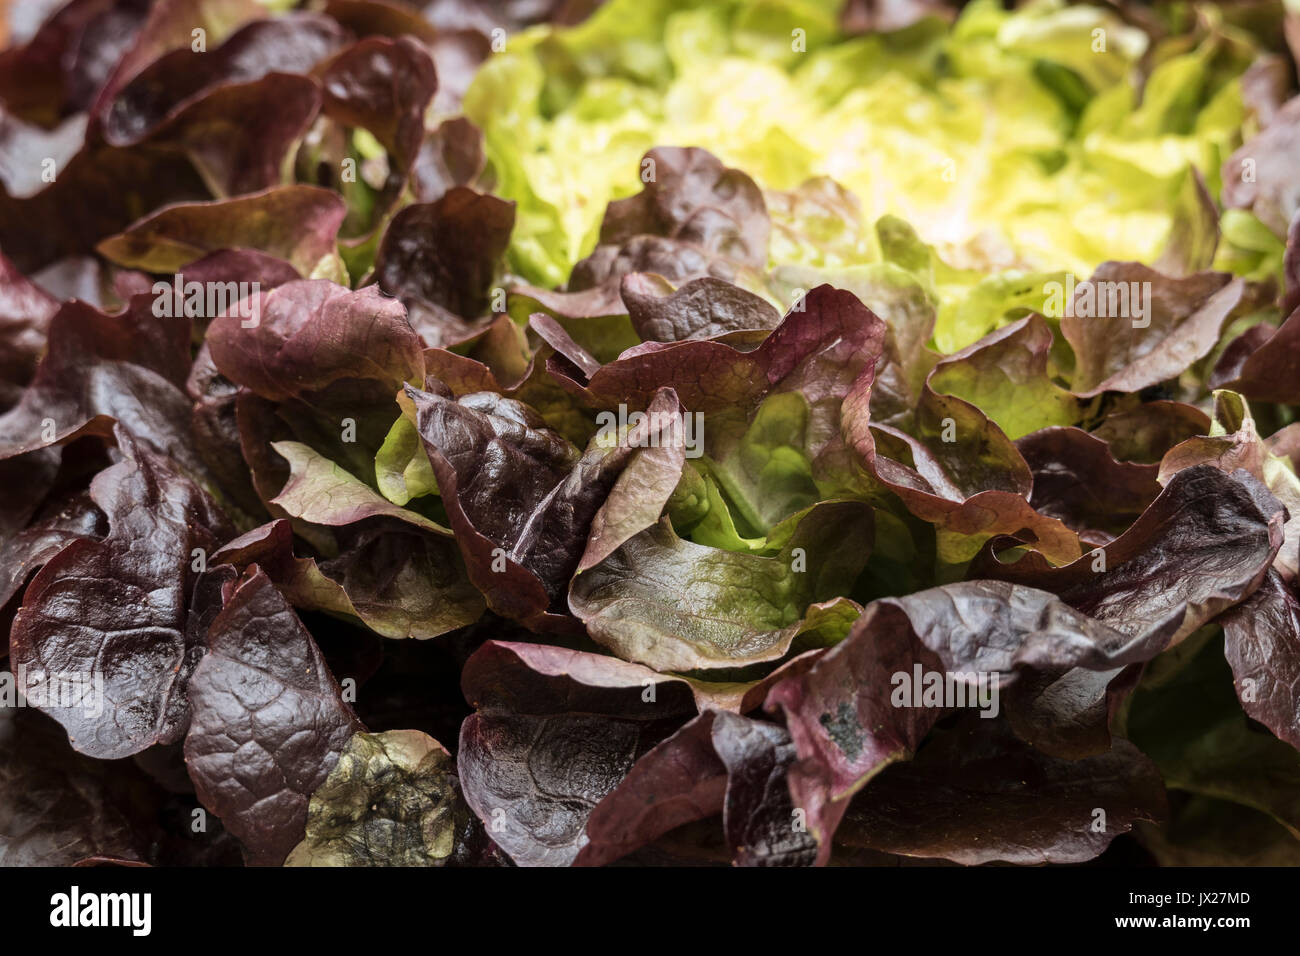 Bio organic red oak leaf lettuce closeup view in natural light - Stock Image